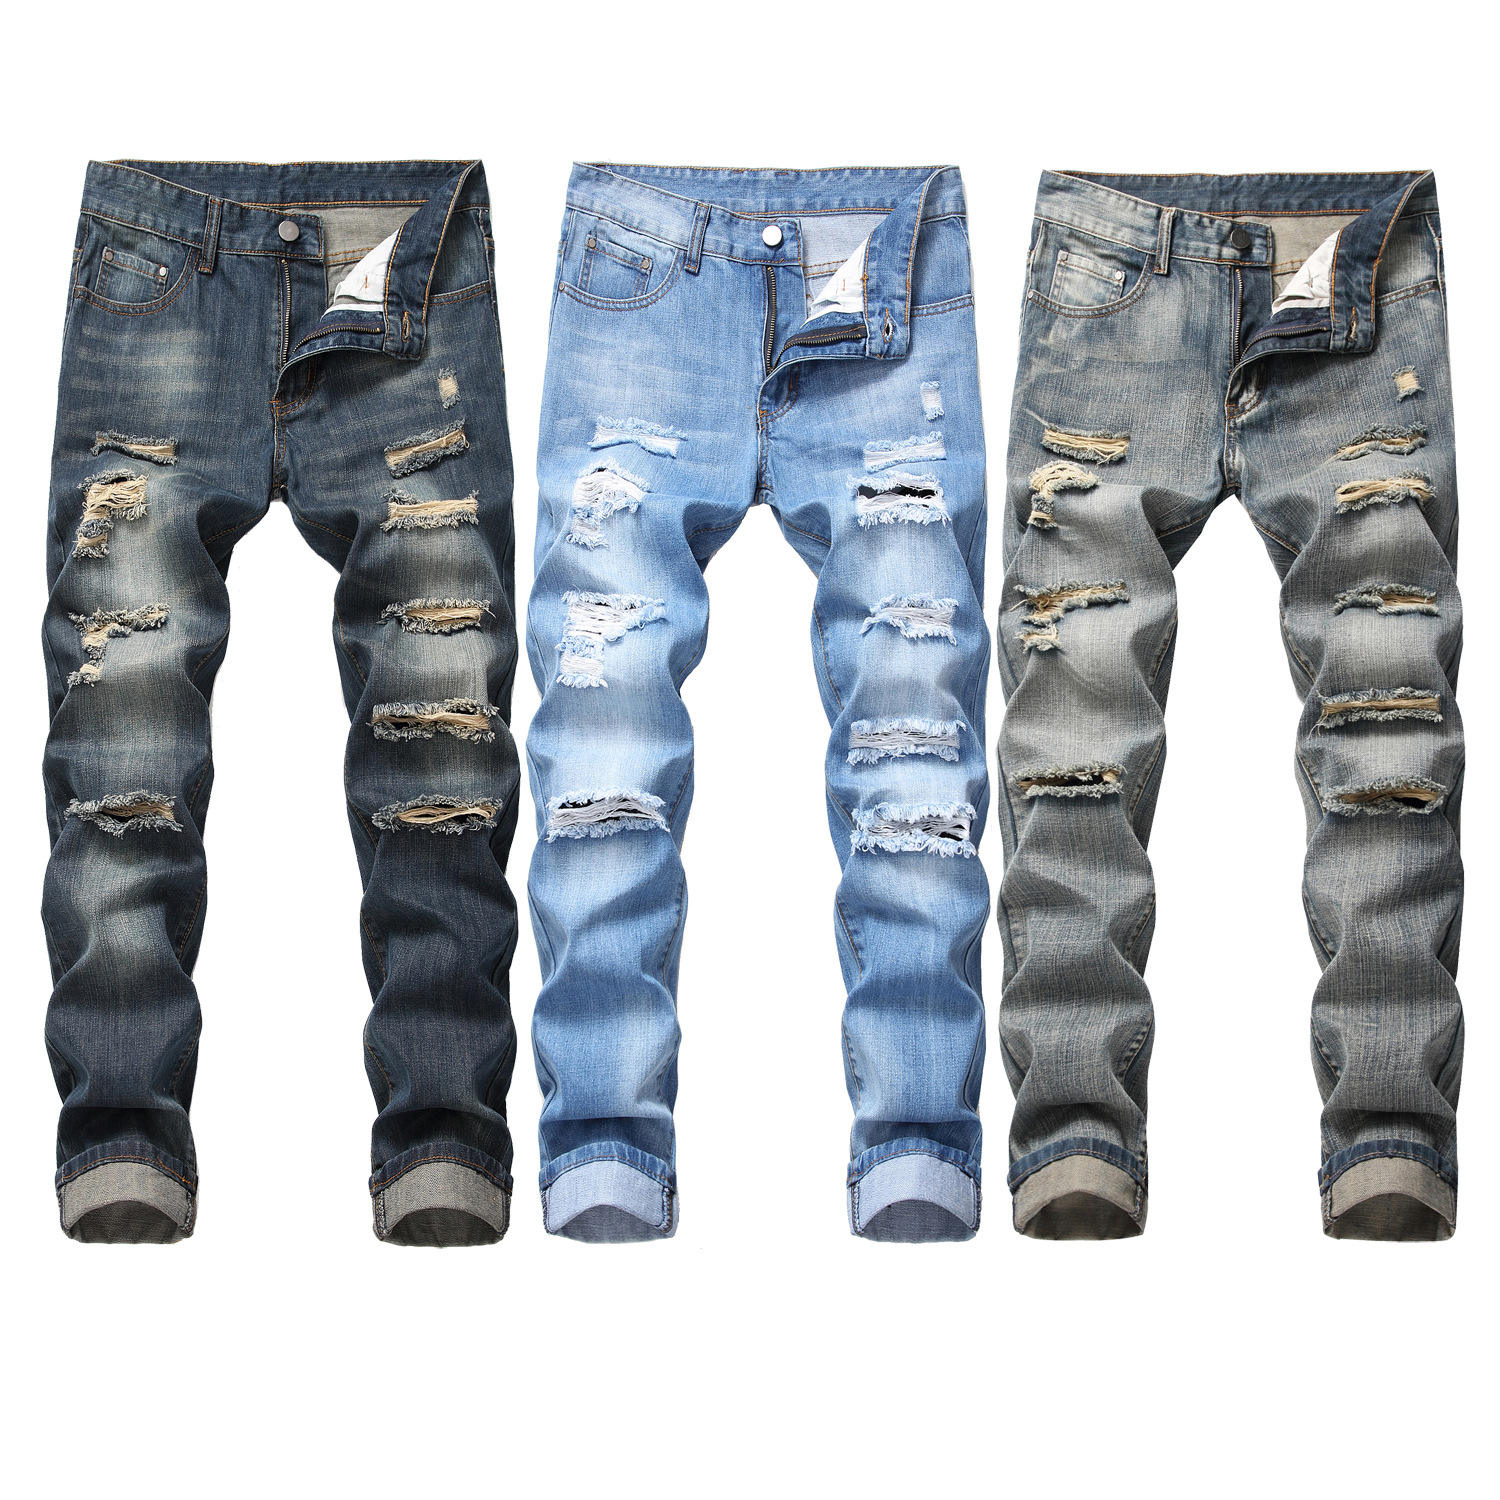 Wholesale Ragged blue biker jeans trousers plus size ripped Destroy jeans wash men jeans denim